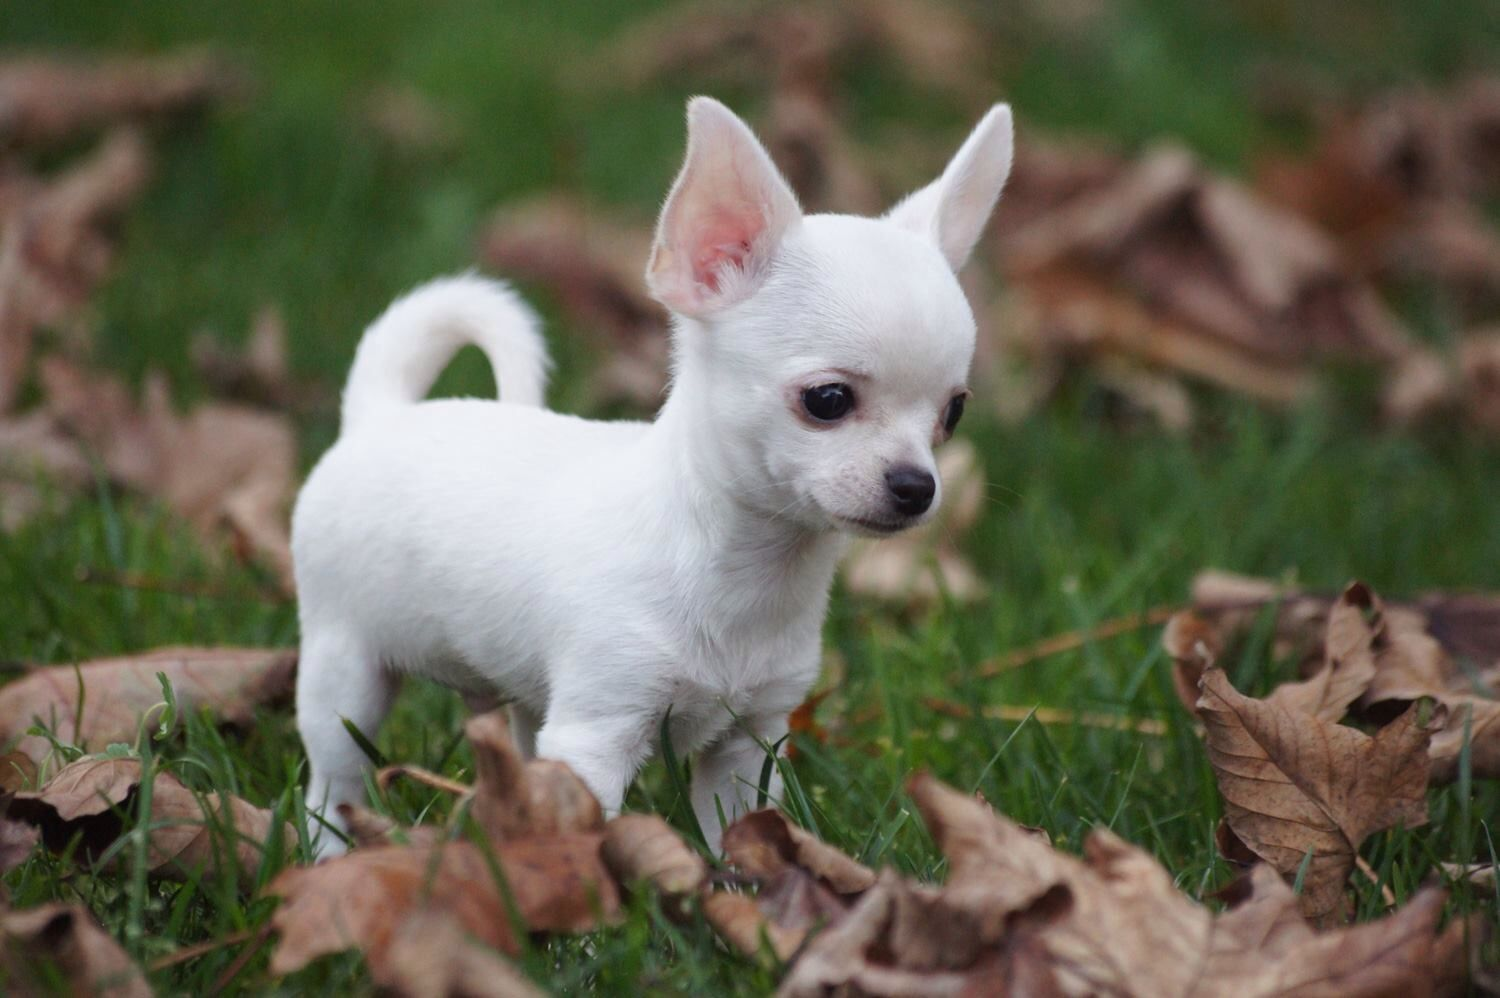 Teacup Chihuahua Puppies For Sale Near Me References